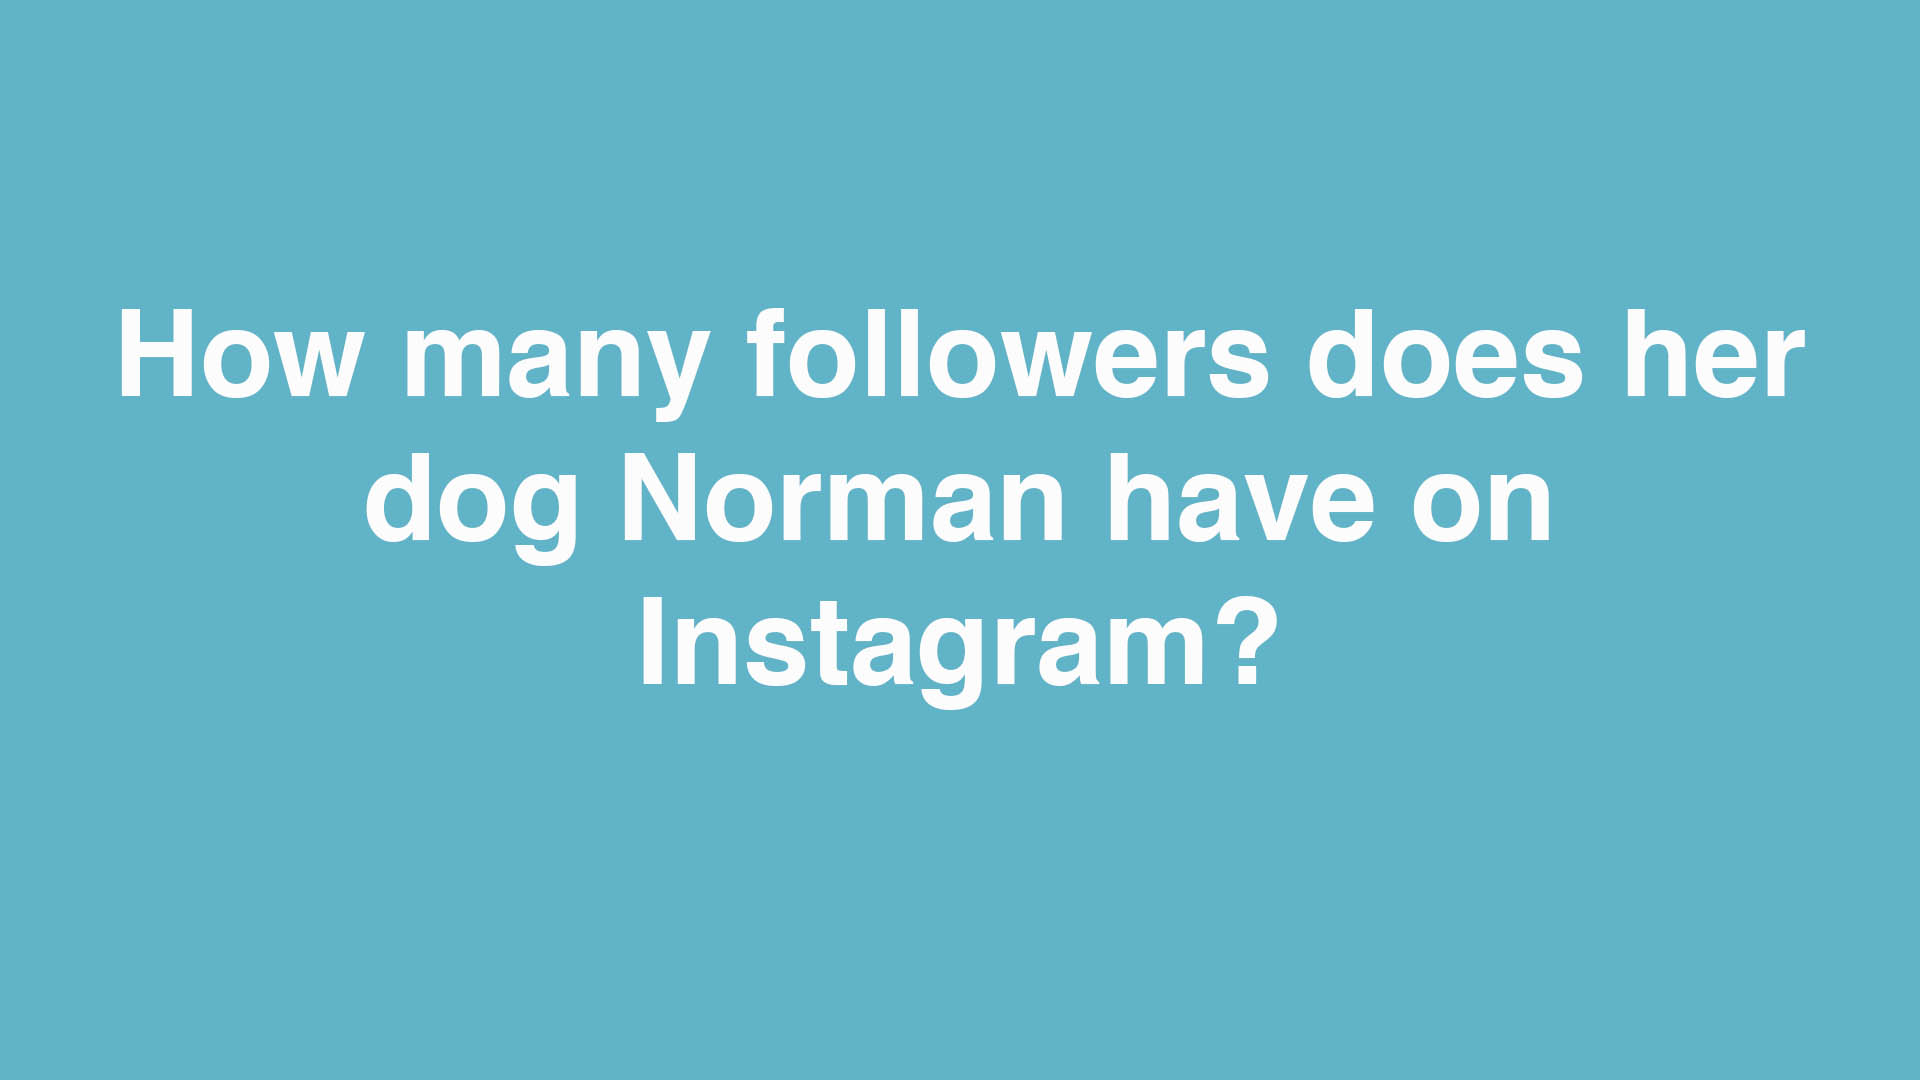 How many followers does her dog Norman have on Instagram?